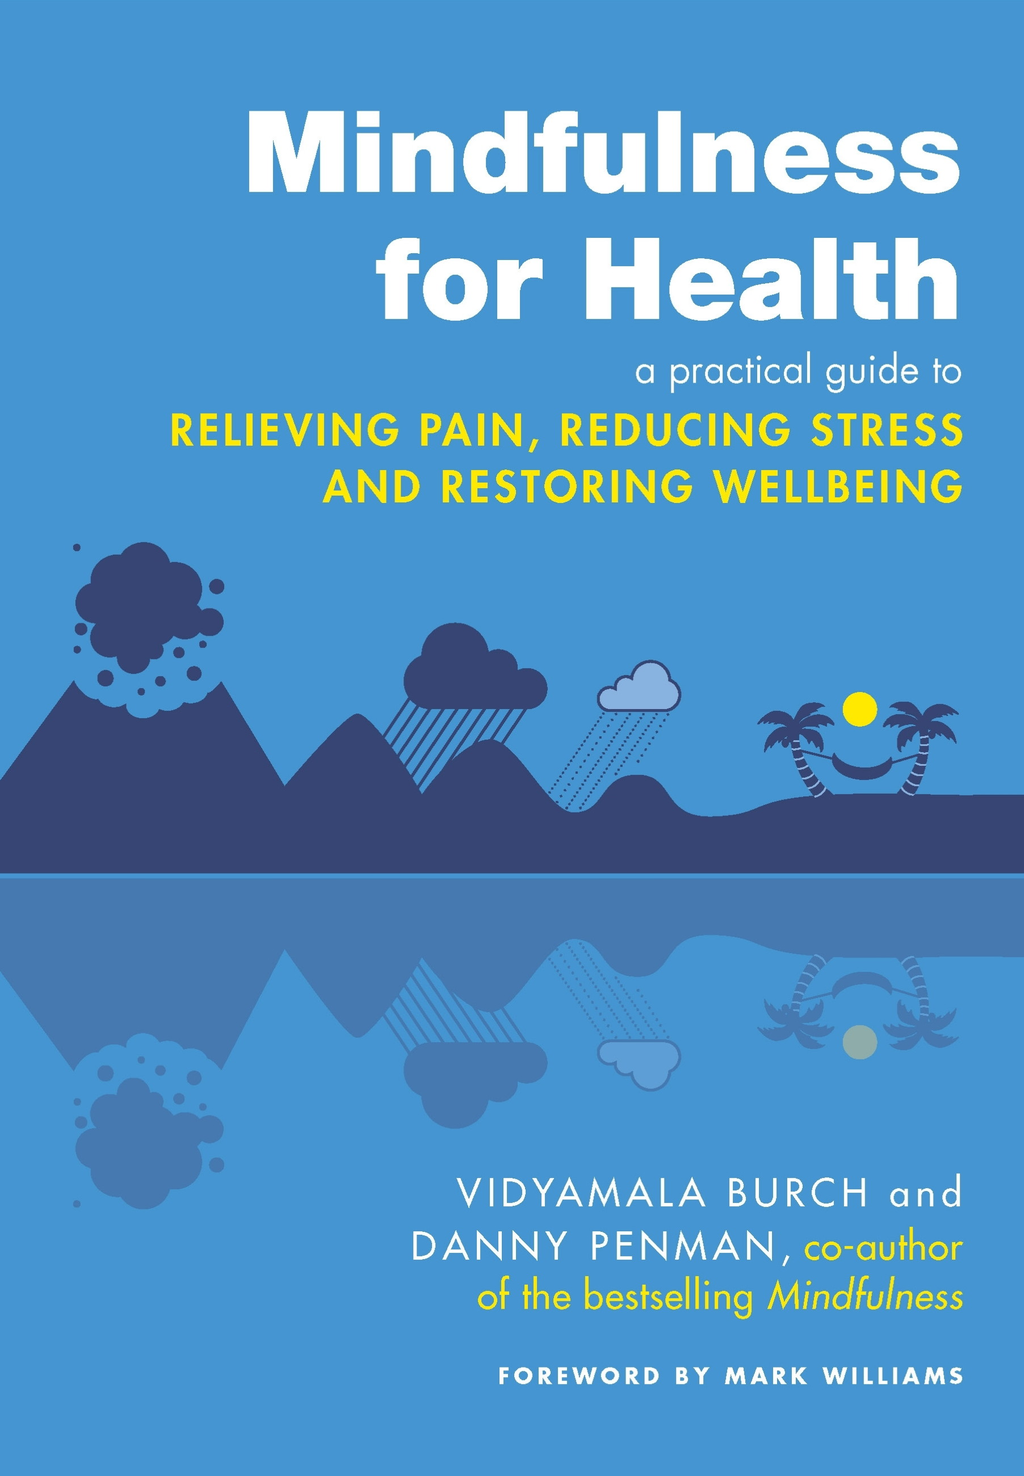 Mindfulness for Health A practical guide to relieving pain, reducing stress and restoring wellbeing